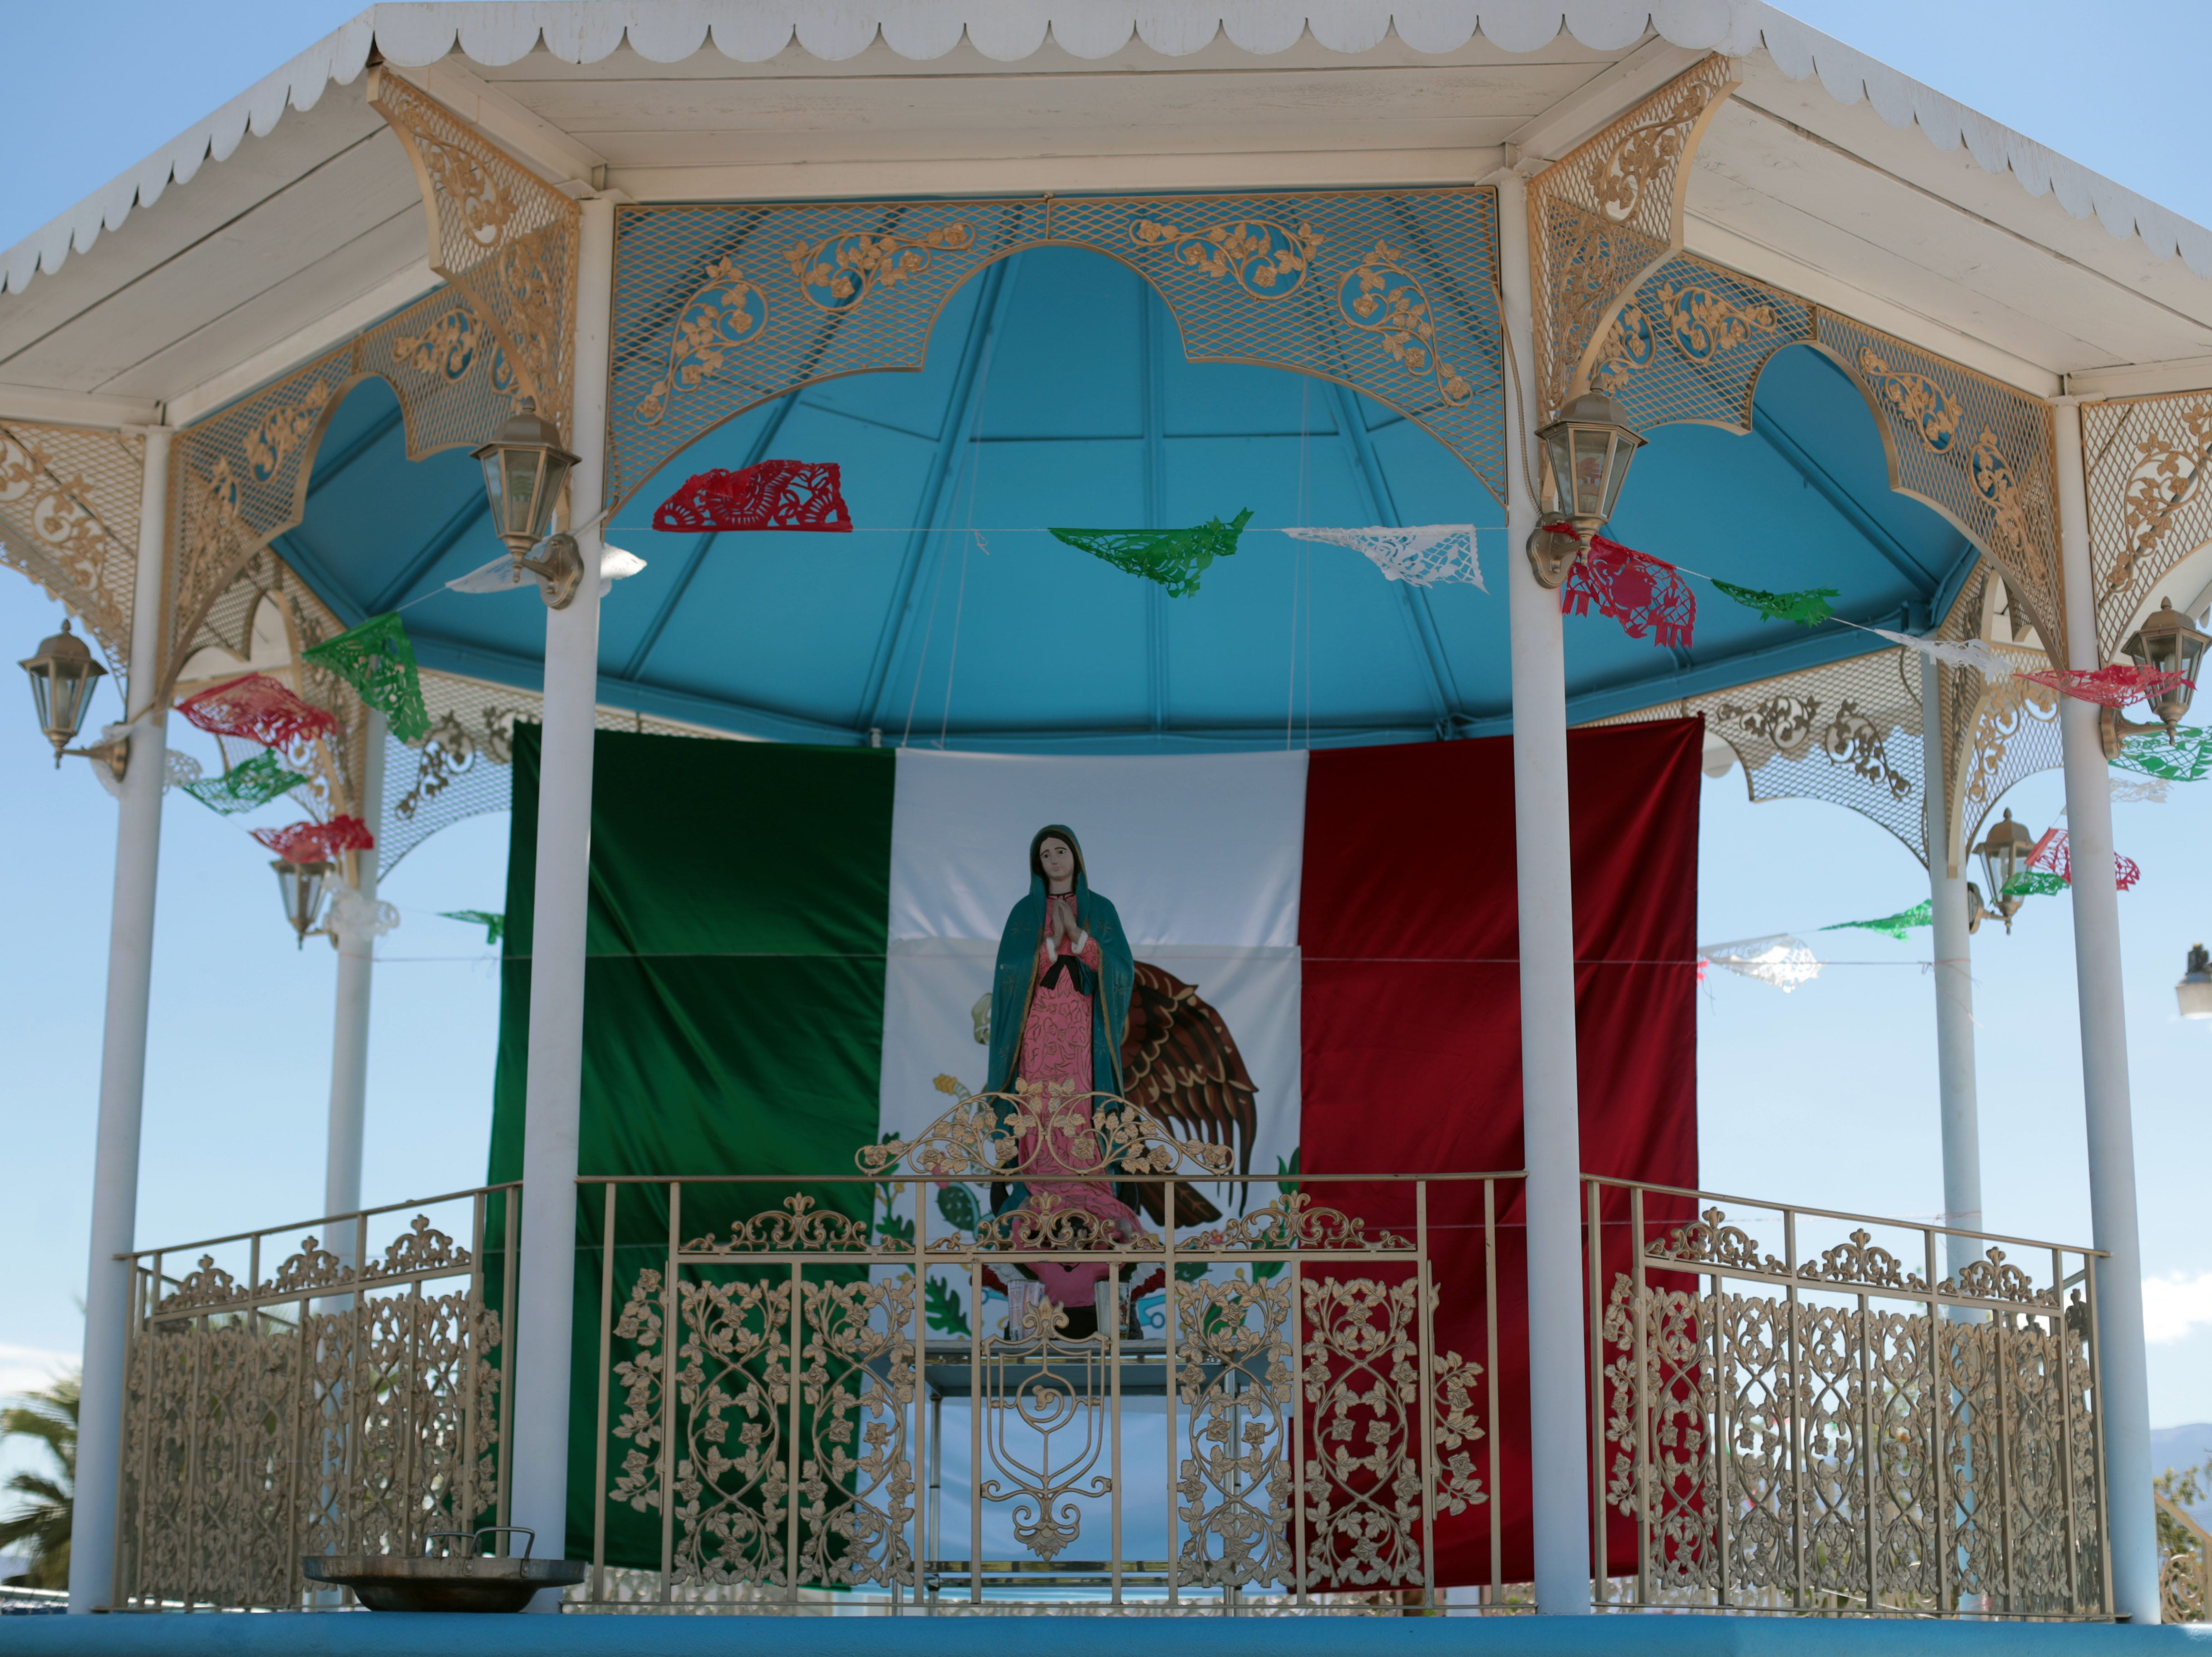 Our Virgin of Guadalupe Church in Mecca decorated for Mexican independence day celebration on Saturday, September 15, 2018.